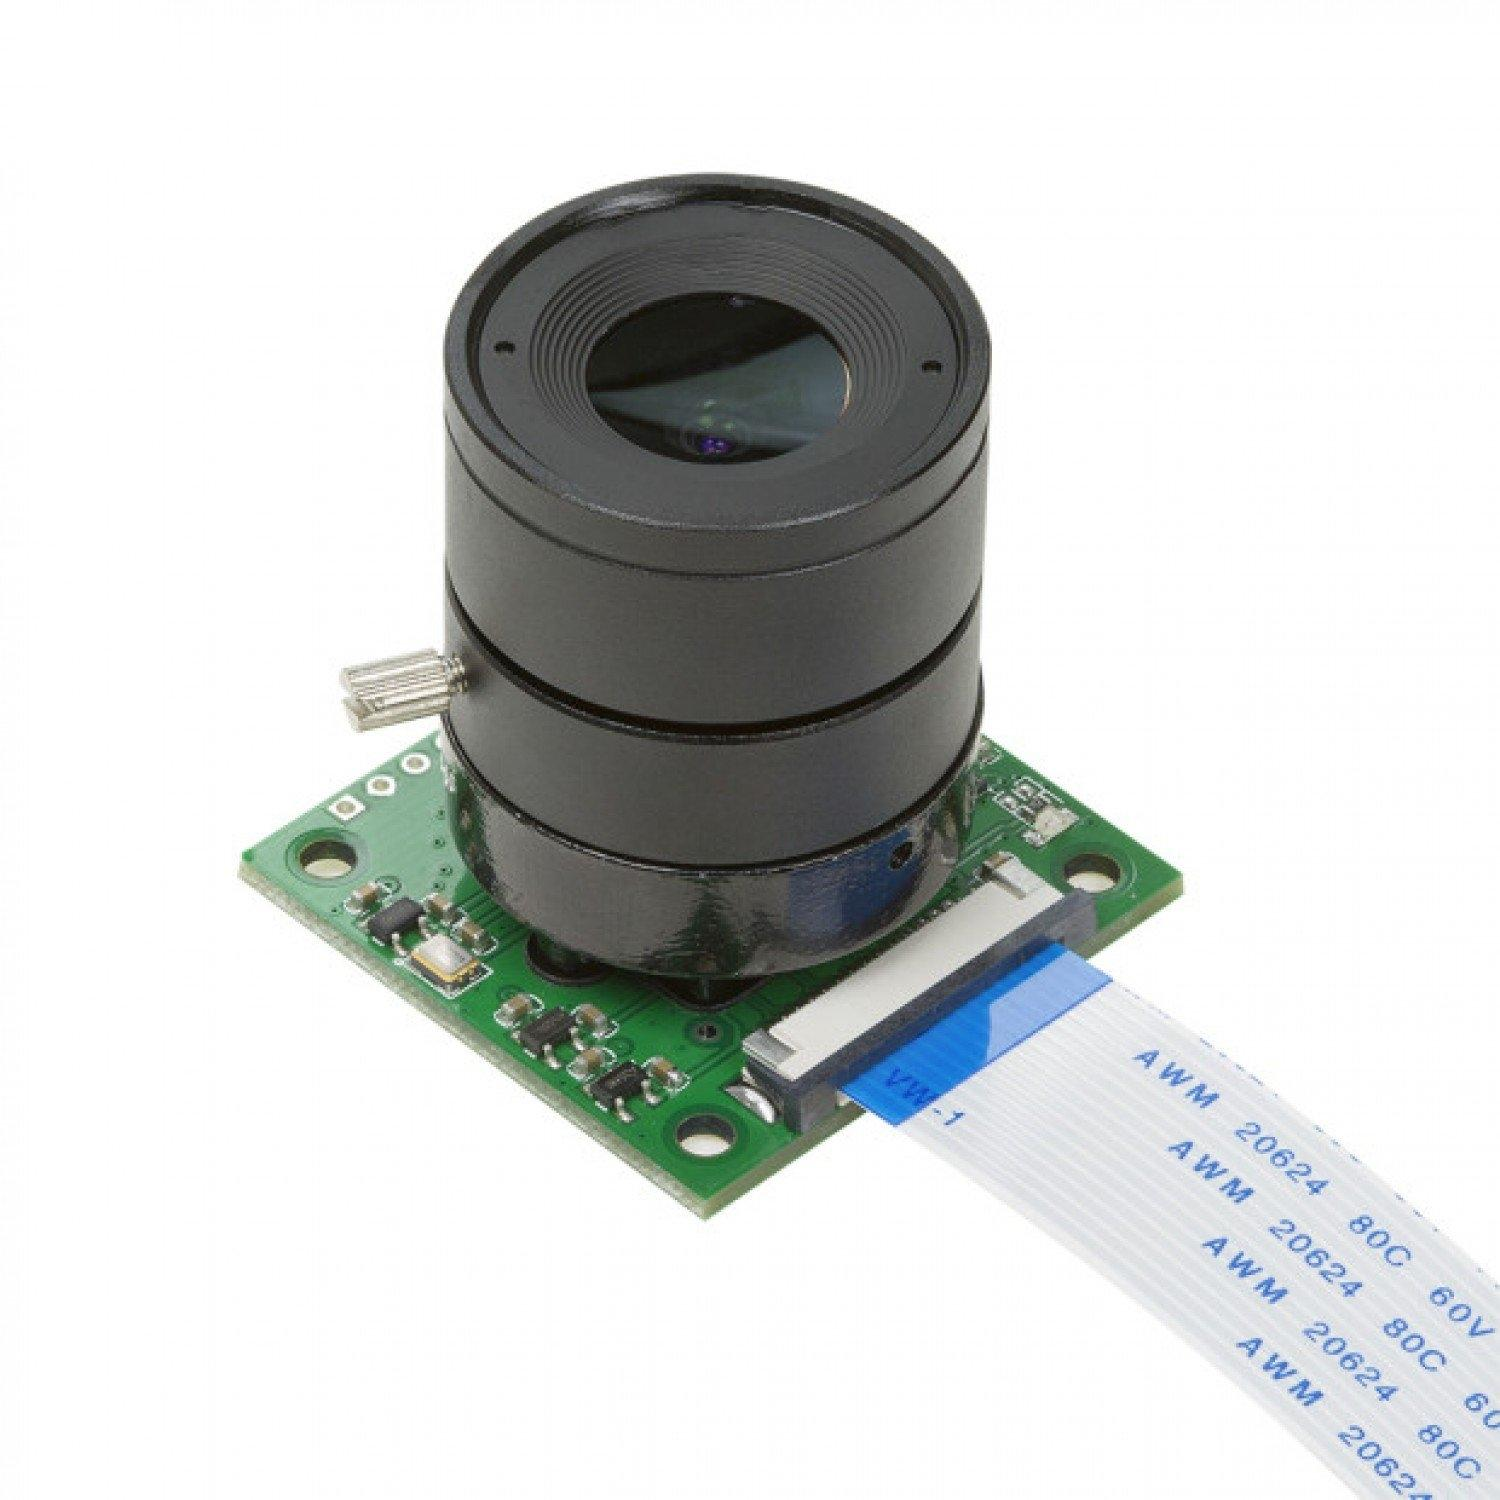 [Raspberry Pi] Arducam 8 MP Sony IMX219 camera module with CS lens 2718 for Raspberry Pi